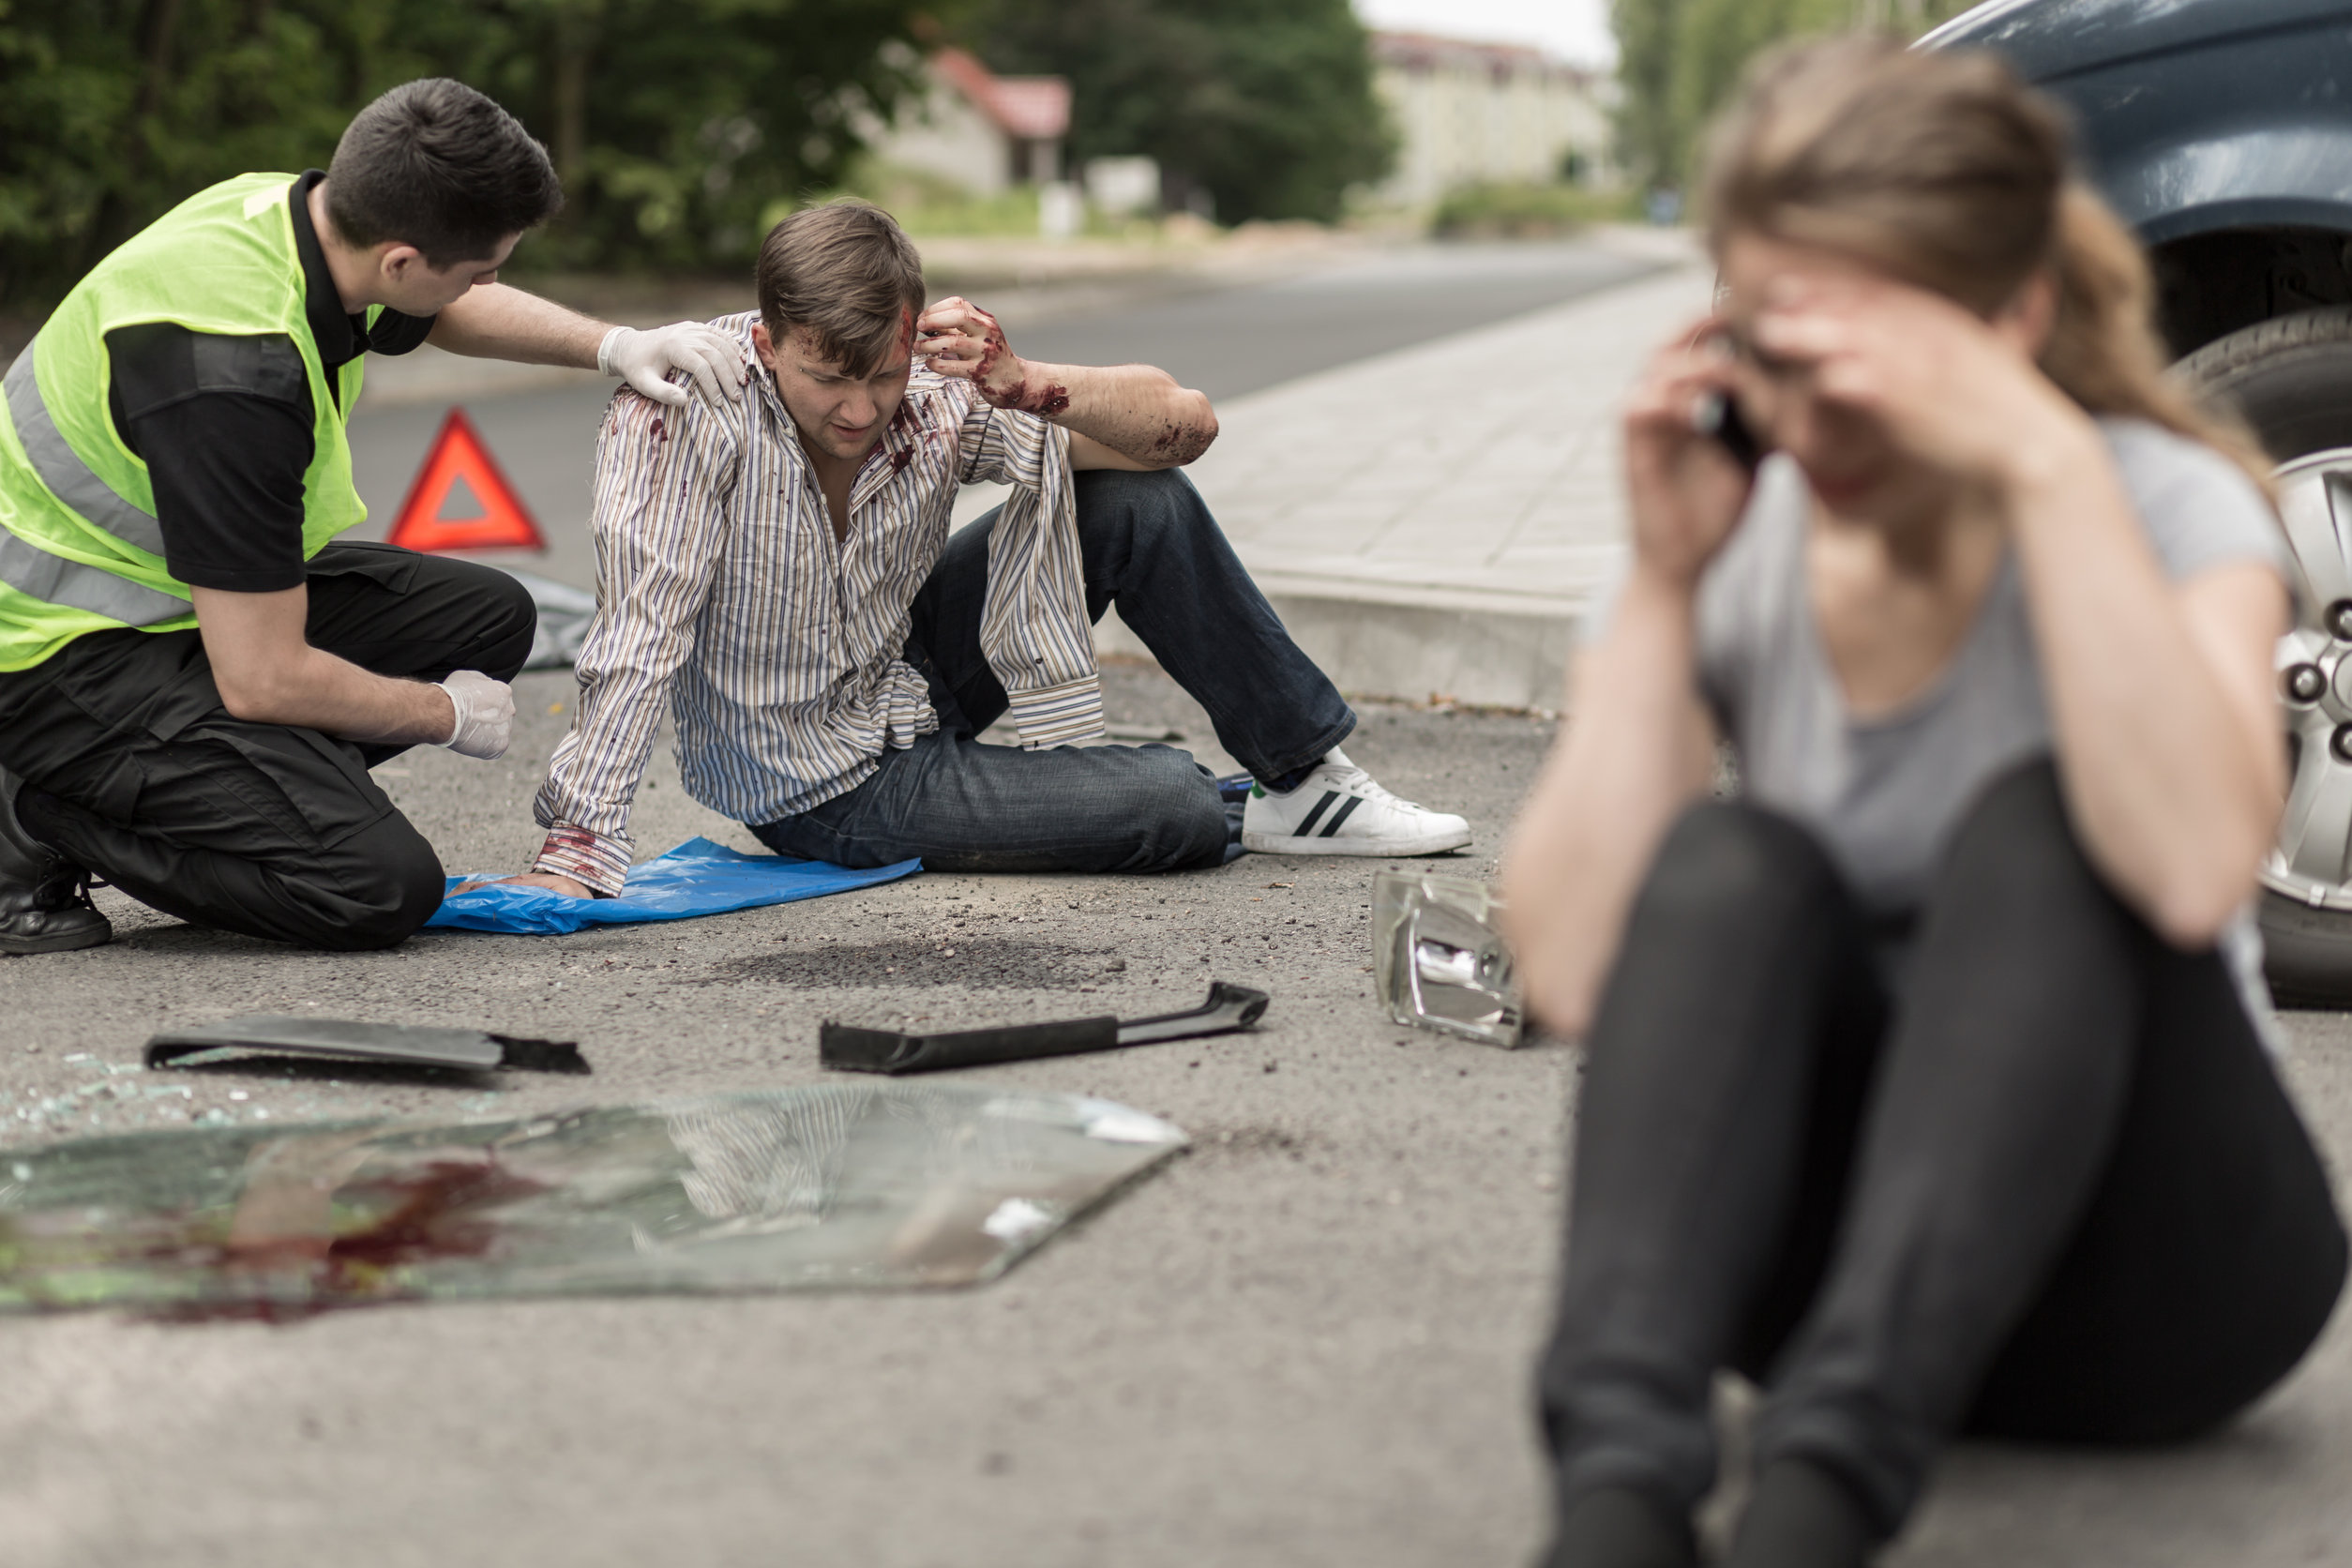 Most Common Soft Tissue Injuries From Car Accidents